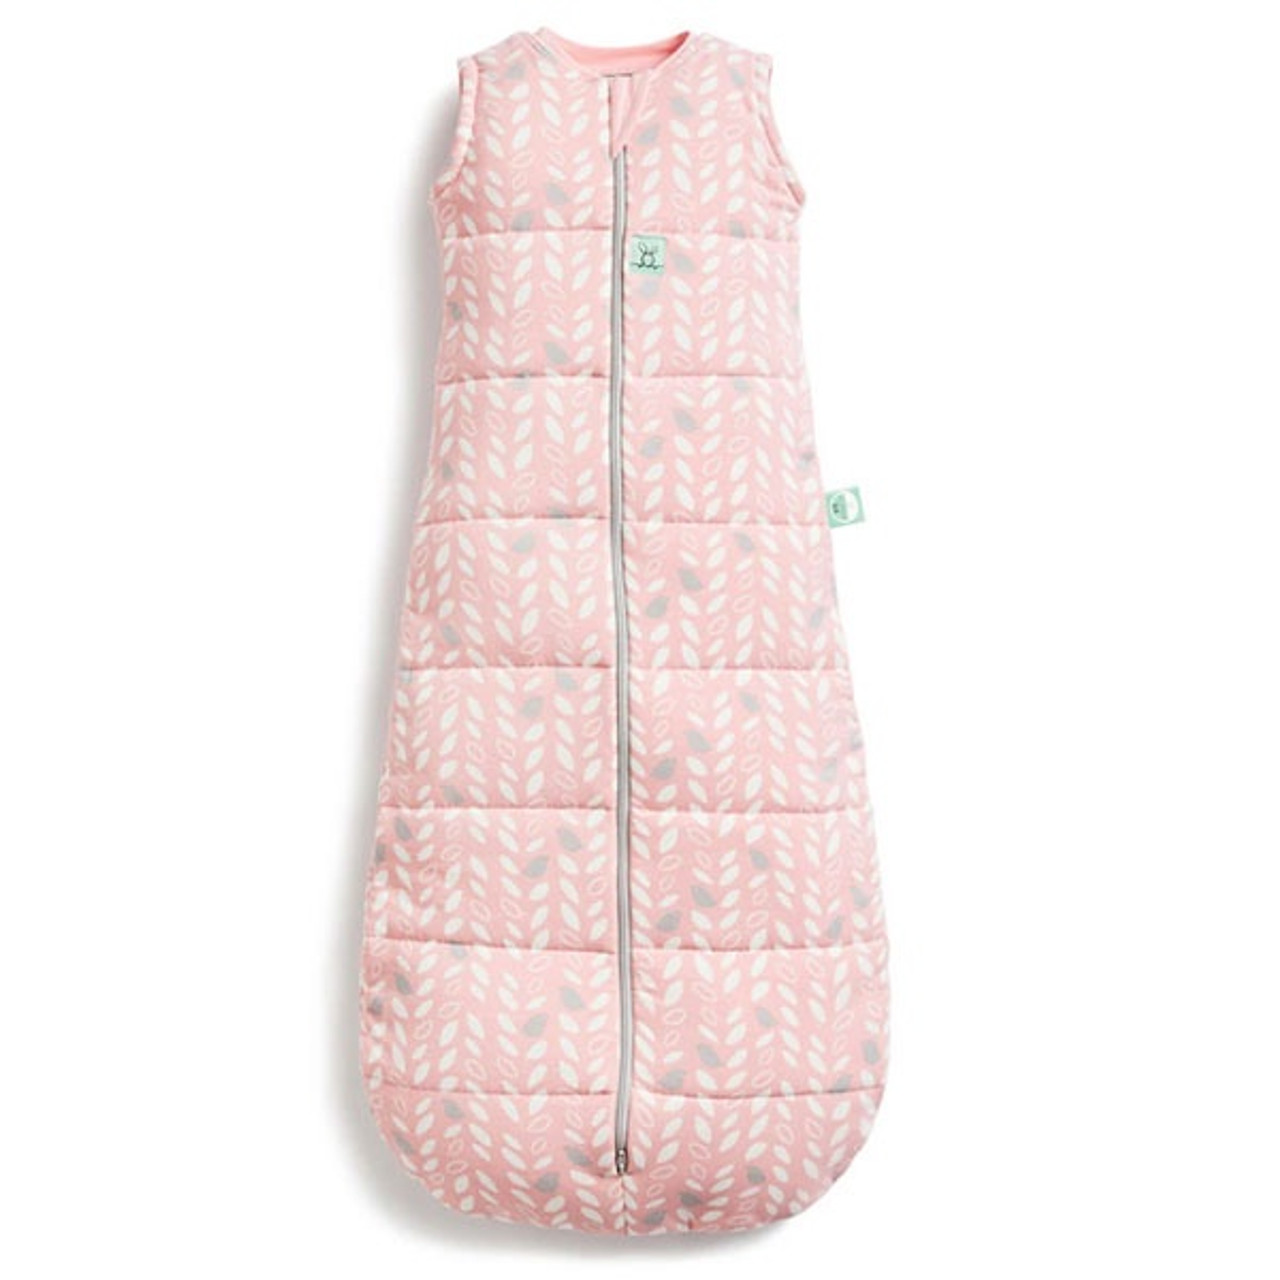 Ergopouch 2.5 tog Jersey Sleeping Bag 8 - 24 Months - SPRING LEAVES